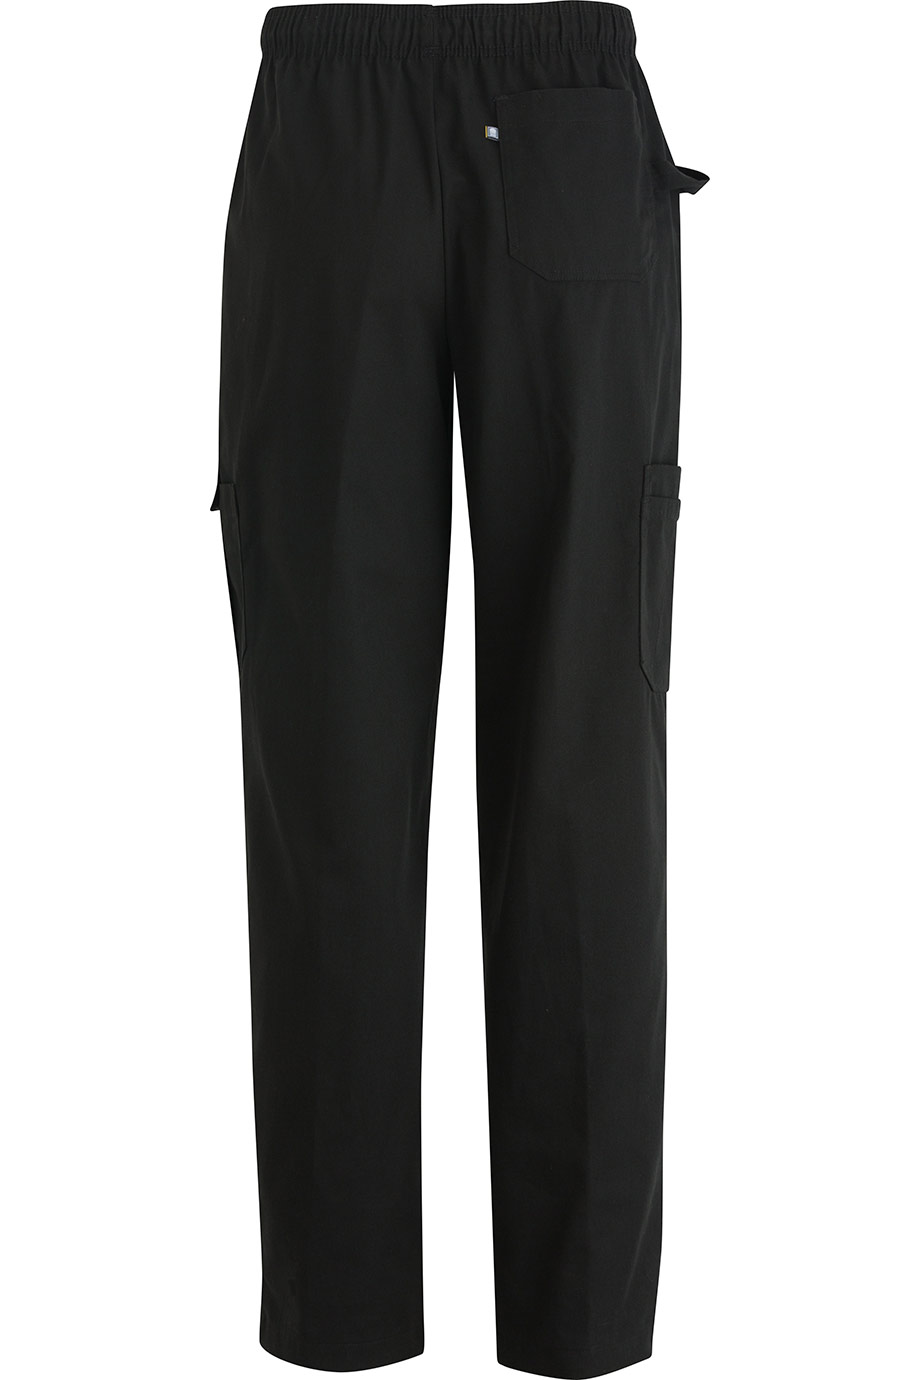 THE CARGO CHEF PANT